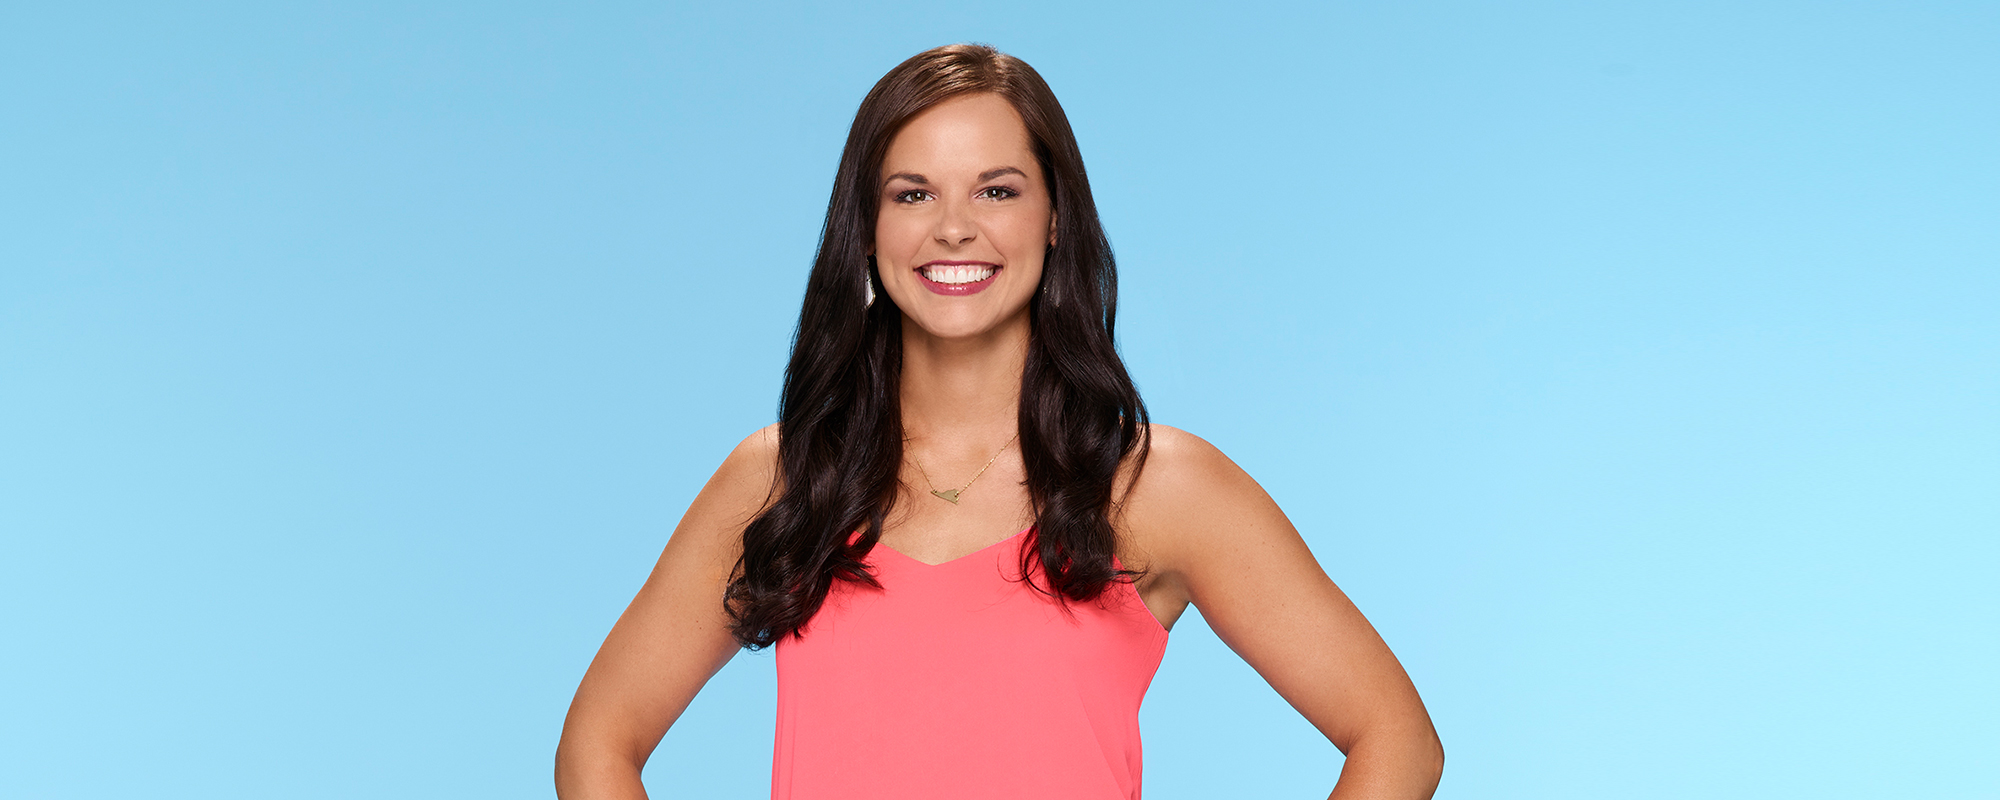 The Bachelor 2017 Contestants Revealed | The Bachelor